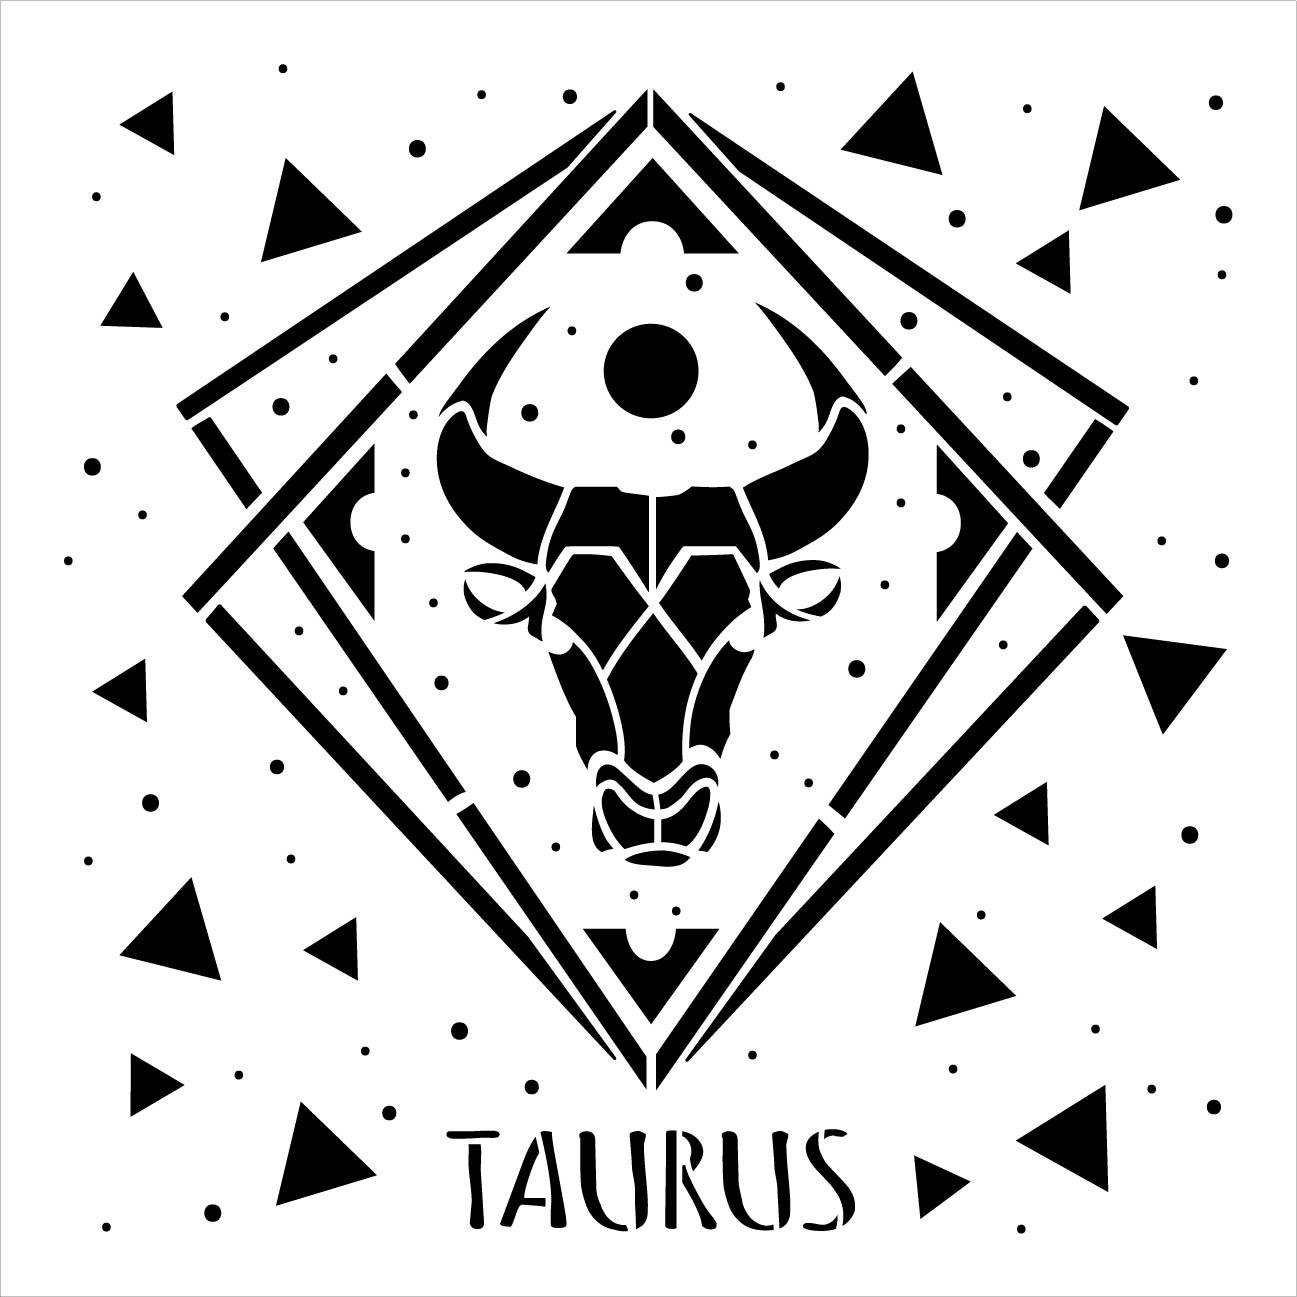 Taurus Zodiac Stencil by StudioR12 | DIY Star Sign Celestial Bedroom & Home Decor | Craft & Paint Astrological Wood Signs | Select Size